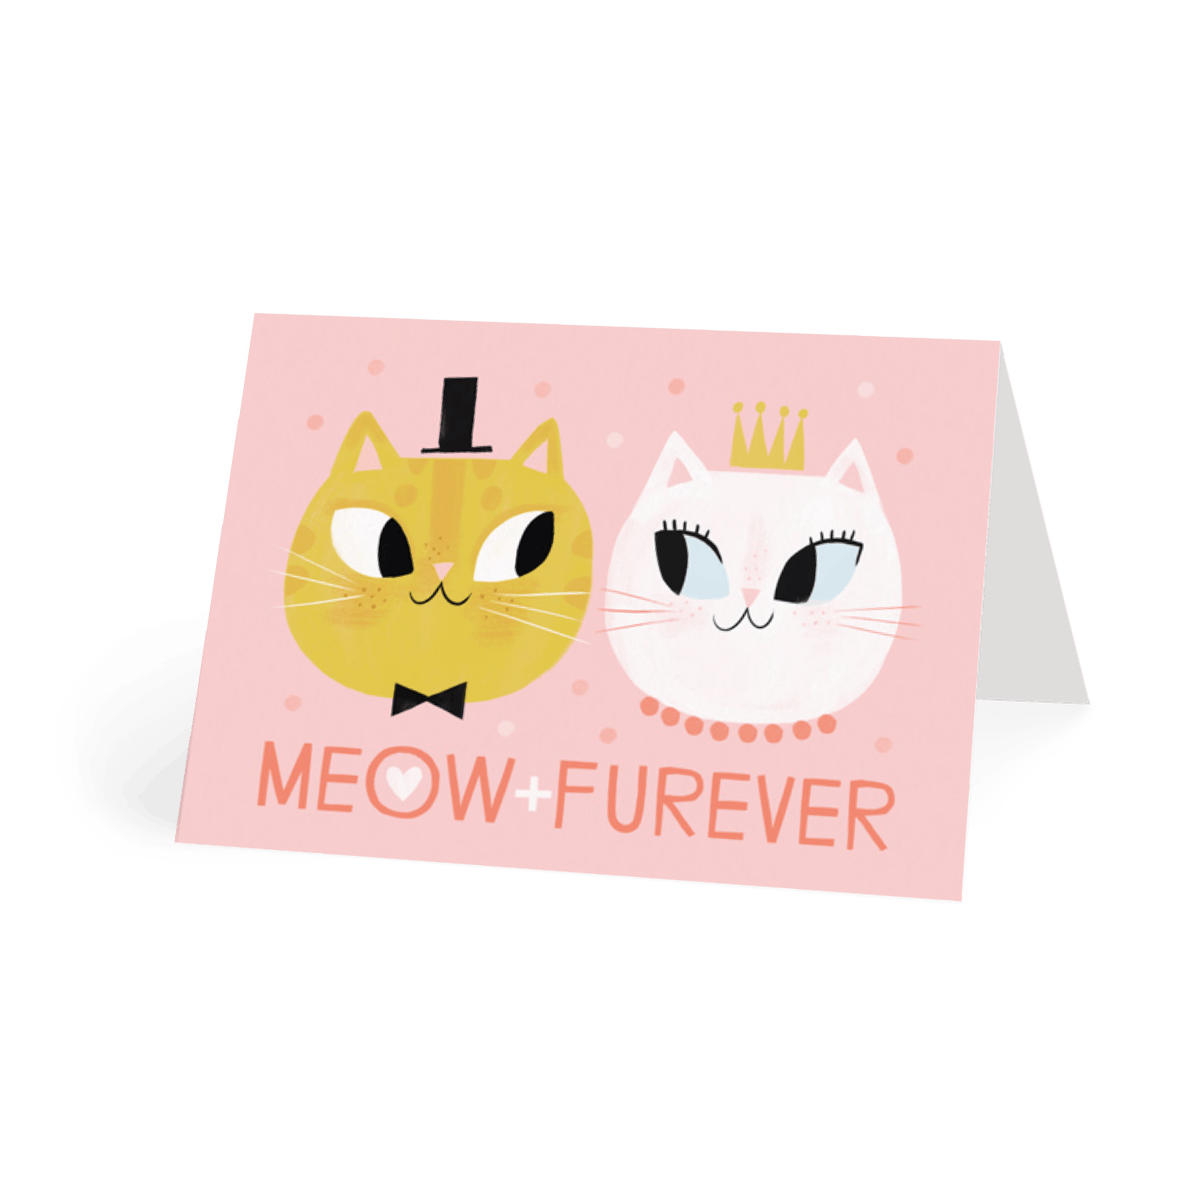 Https%3a%2f%2fwww.papier.com%2fproduct image%2f4878%2f14%2fmeow furever 1264 front 1457541001.png?ixlib=rb 1.1